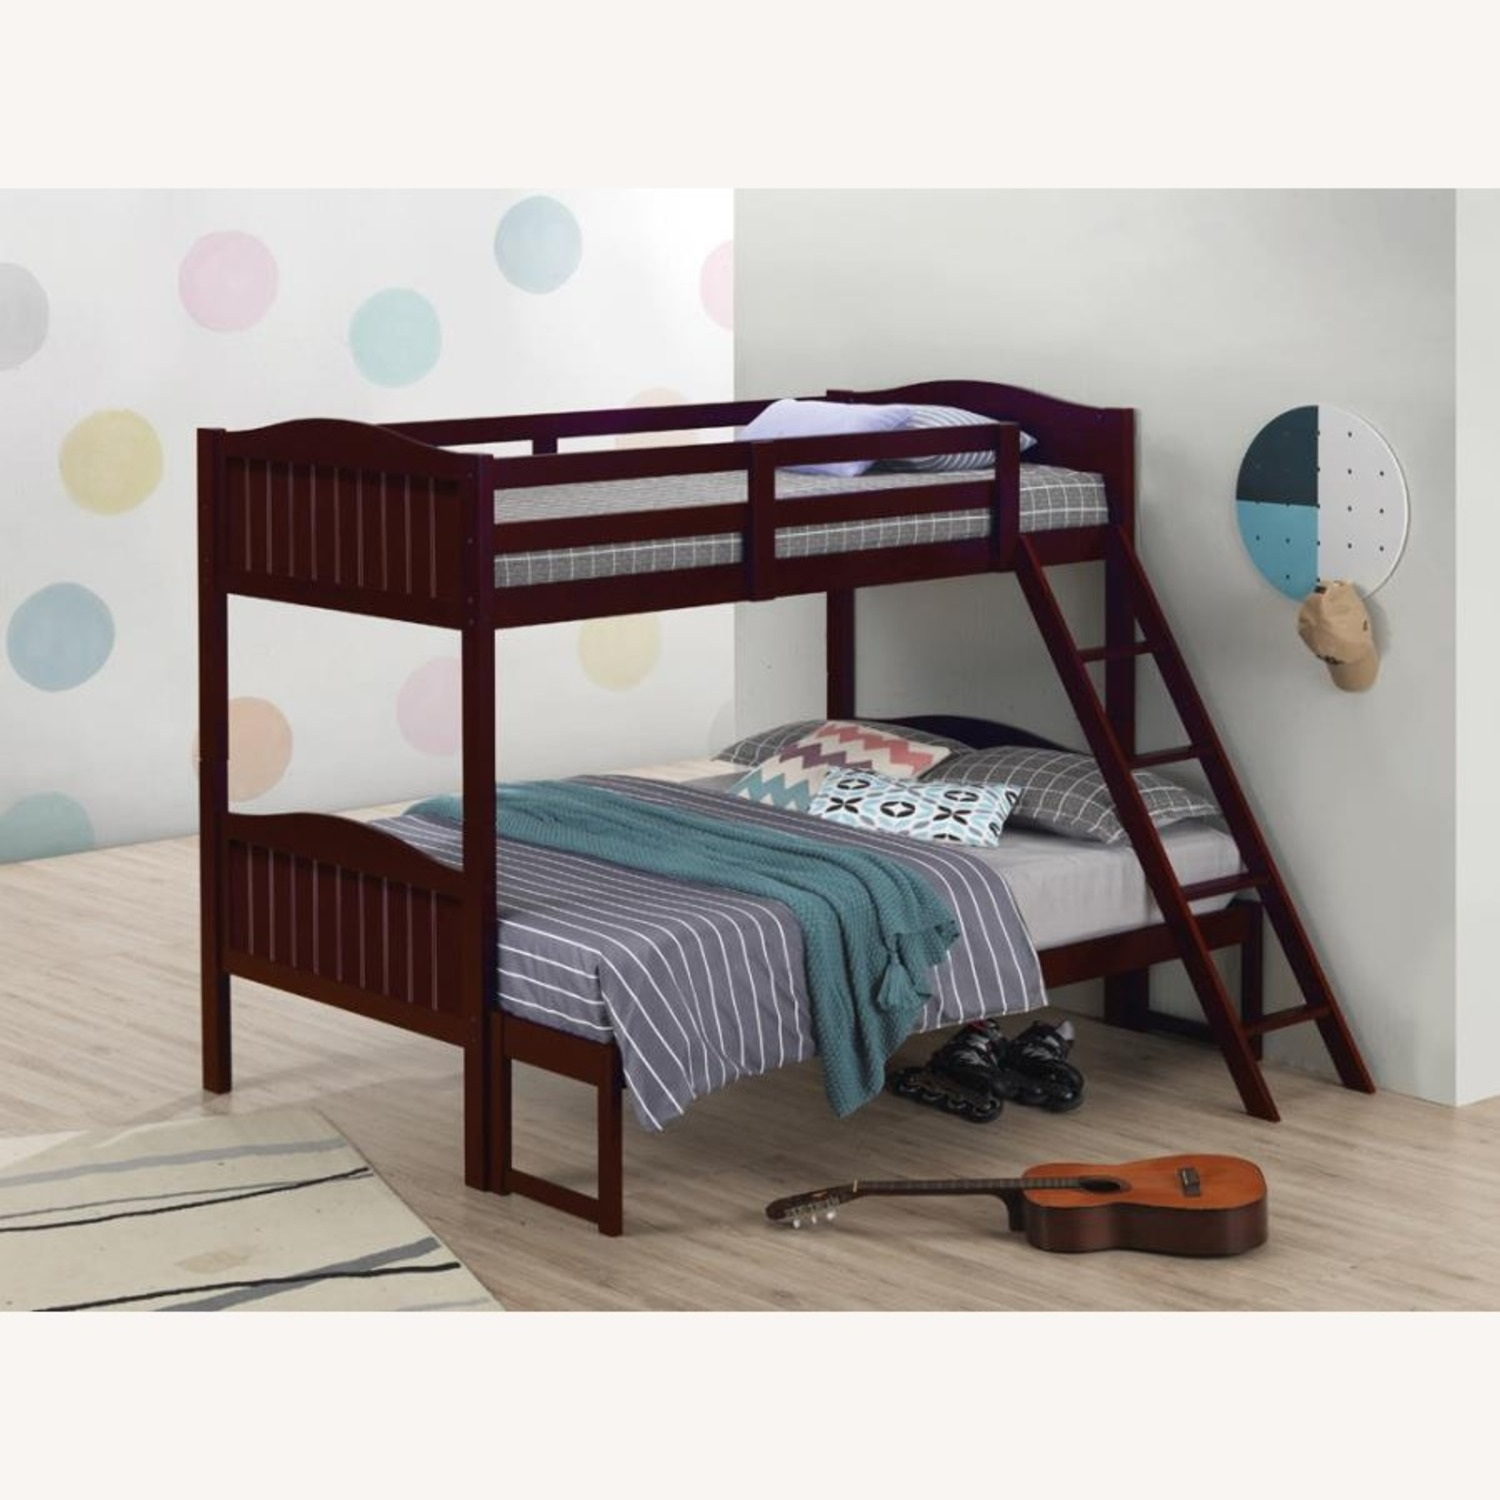 Twin-Over-Full Bunk Bed In Espresso Finish - image-3